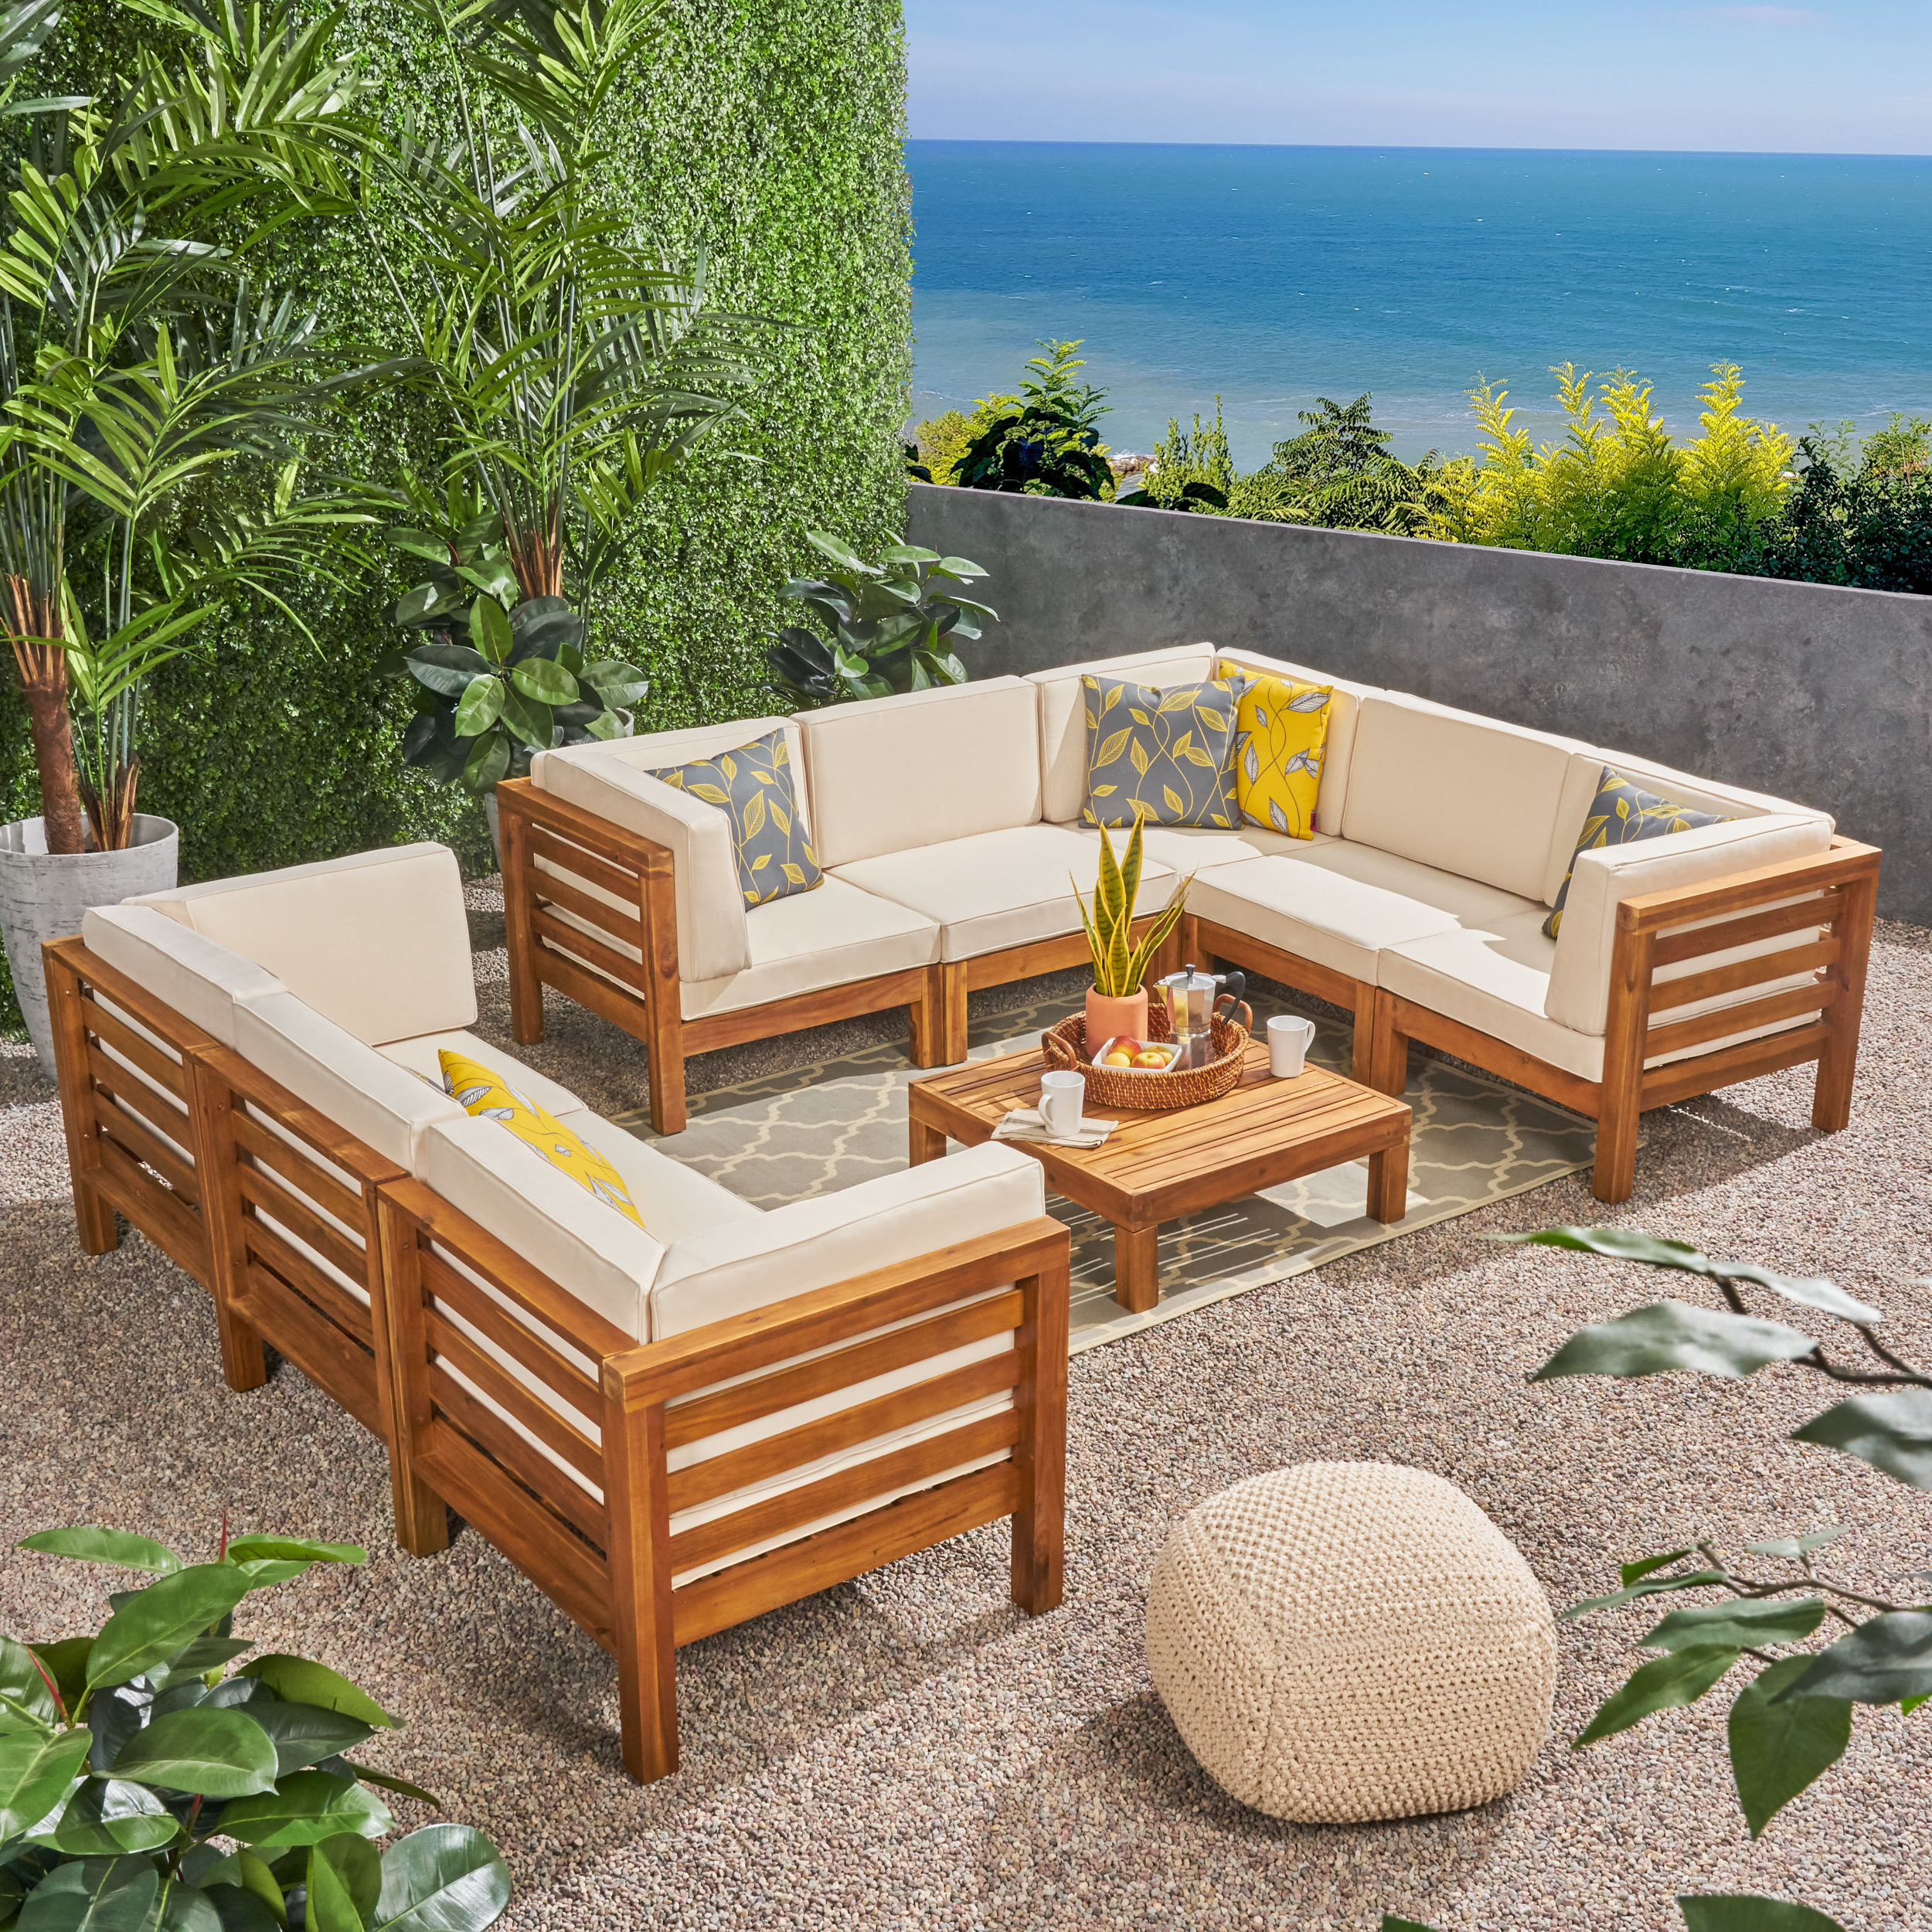 2019 Seaham Patio Sectionals With Cushions In Seaham 9 Piece Teak Sectional Seating Group With Cushions (View 6 of 20)